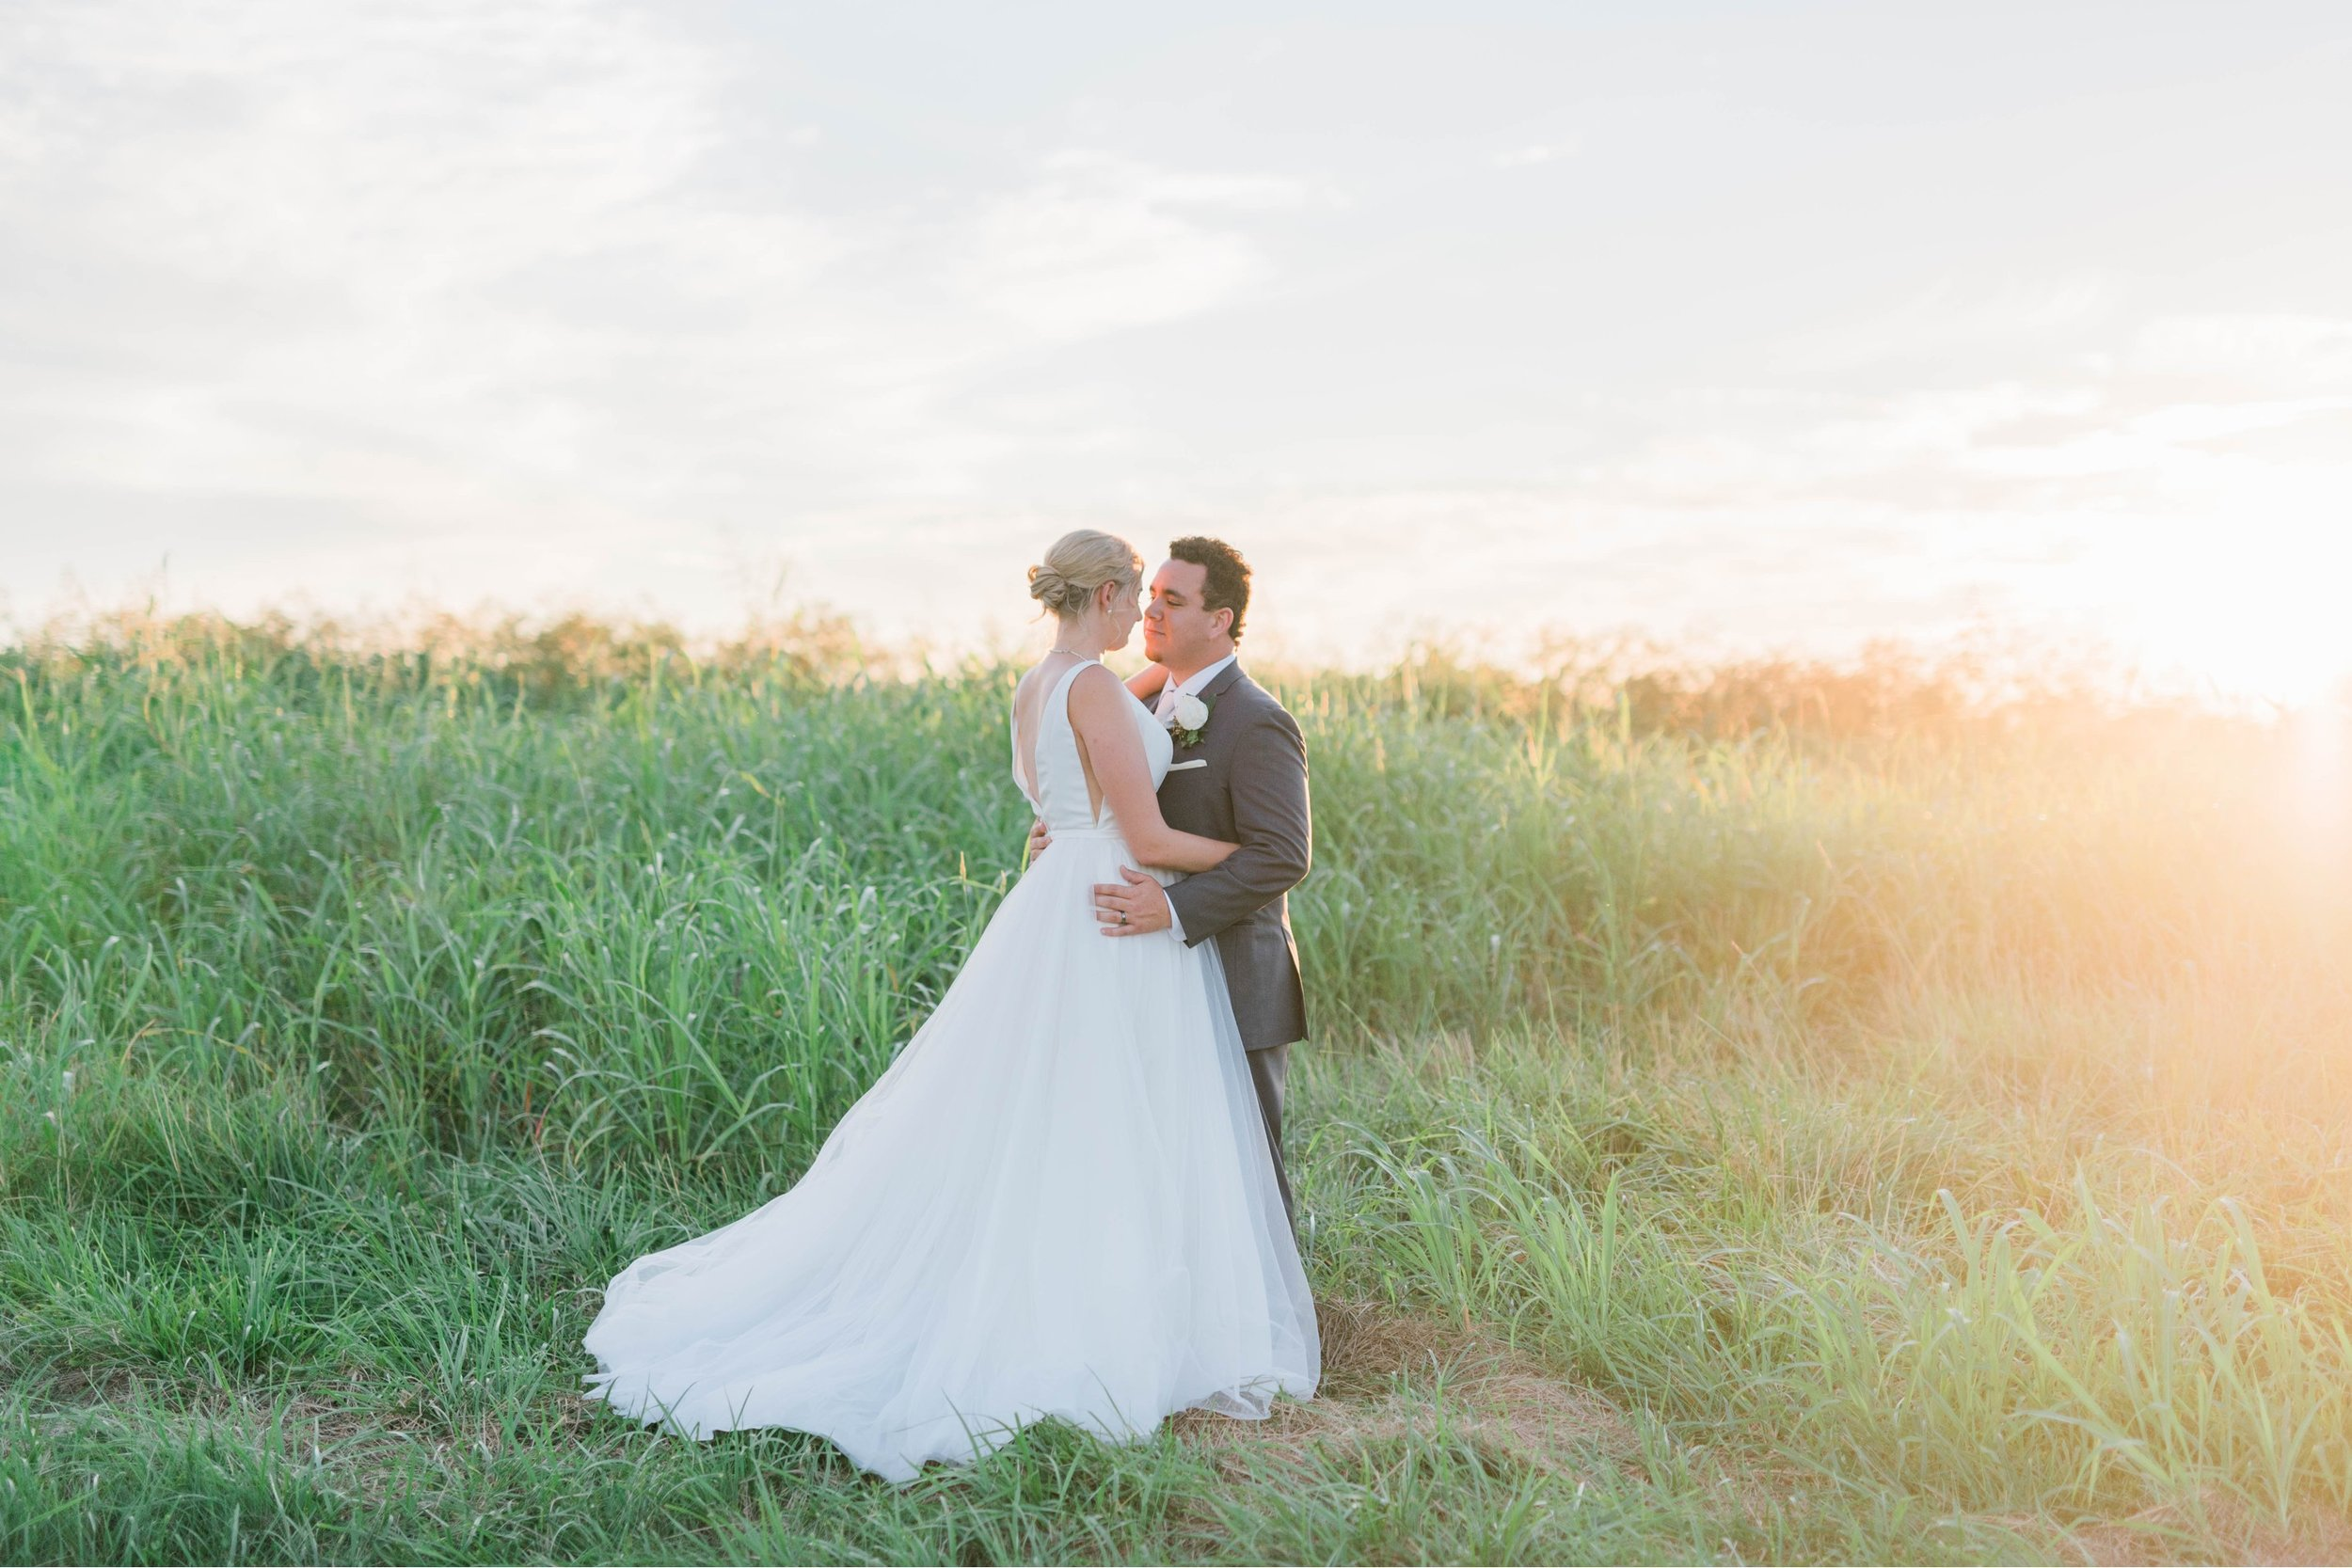 westmanorestate_entwinedevents_lynchburgweddingphotographer_Virginiaweddingphotographer_kateyam 20.jpg